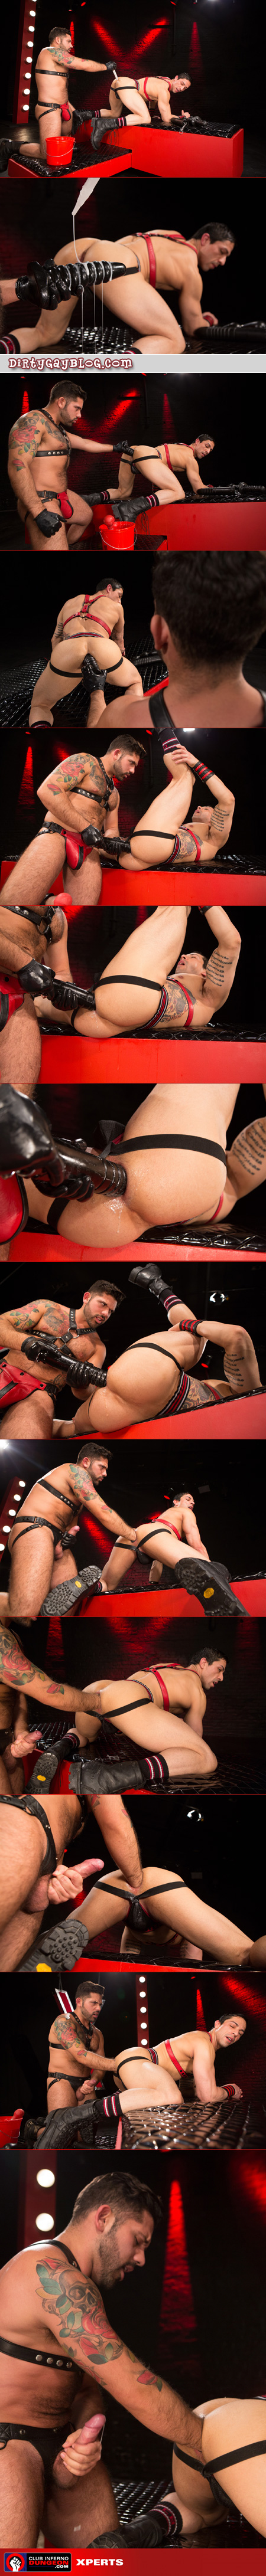 Hairy Latino in leather fists a man's ass and uses giant dildos on him.